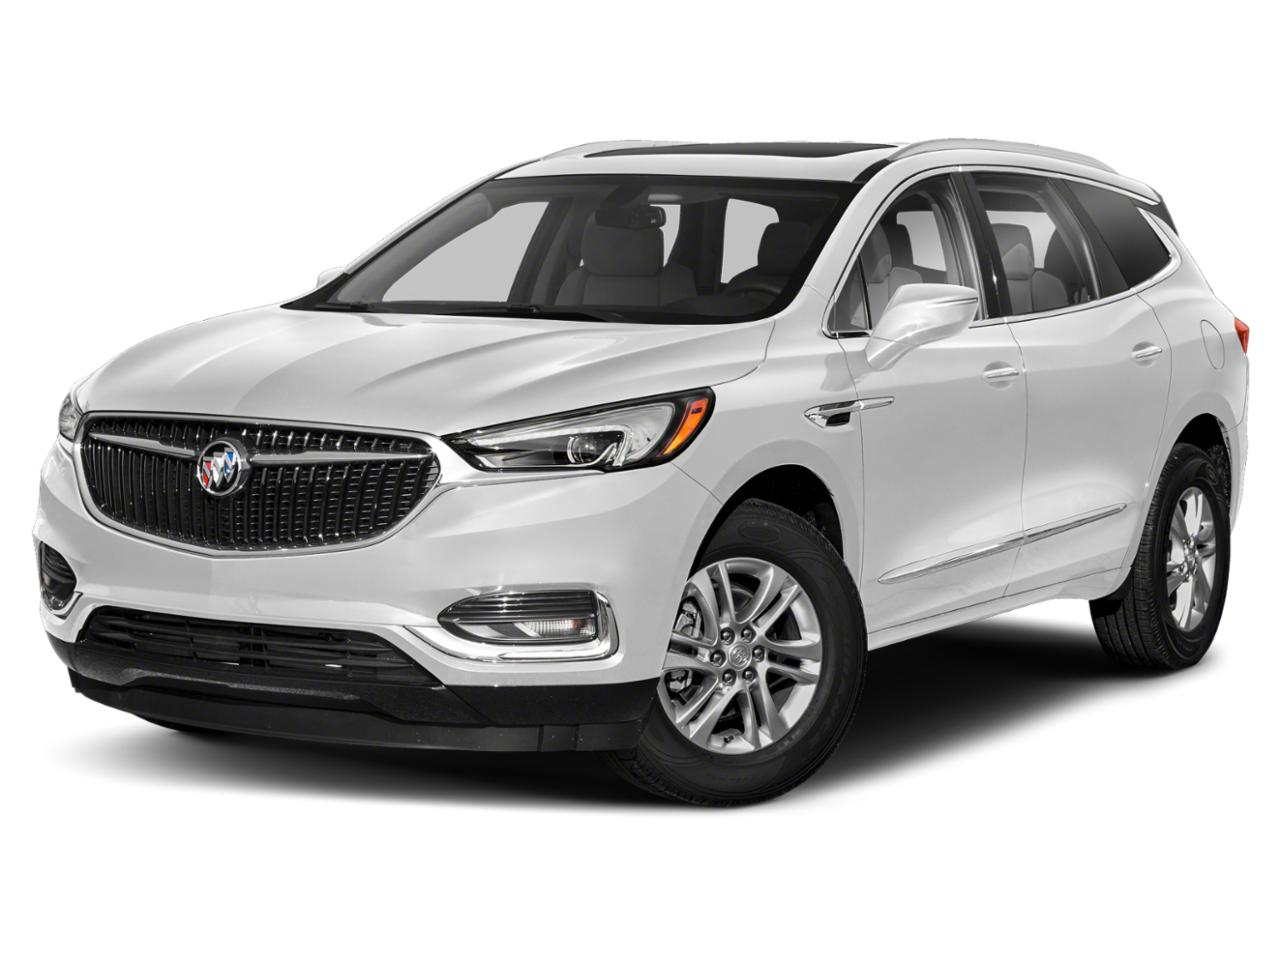 2020 Buick Enclave Vehicle Photo in Independence, MO 64055